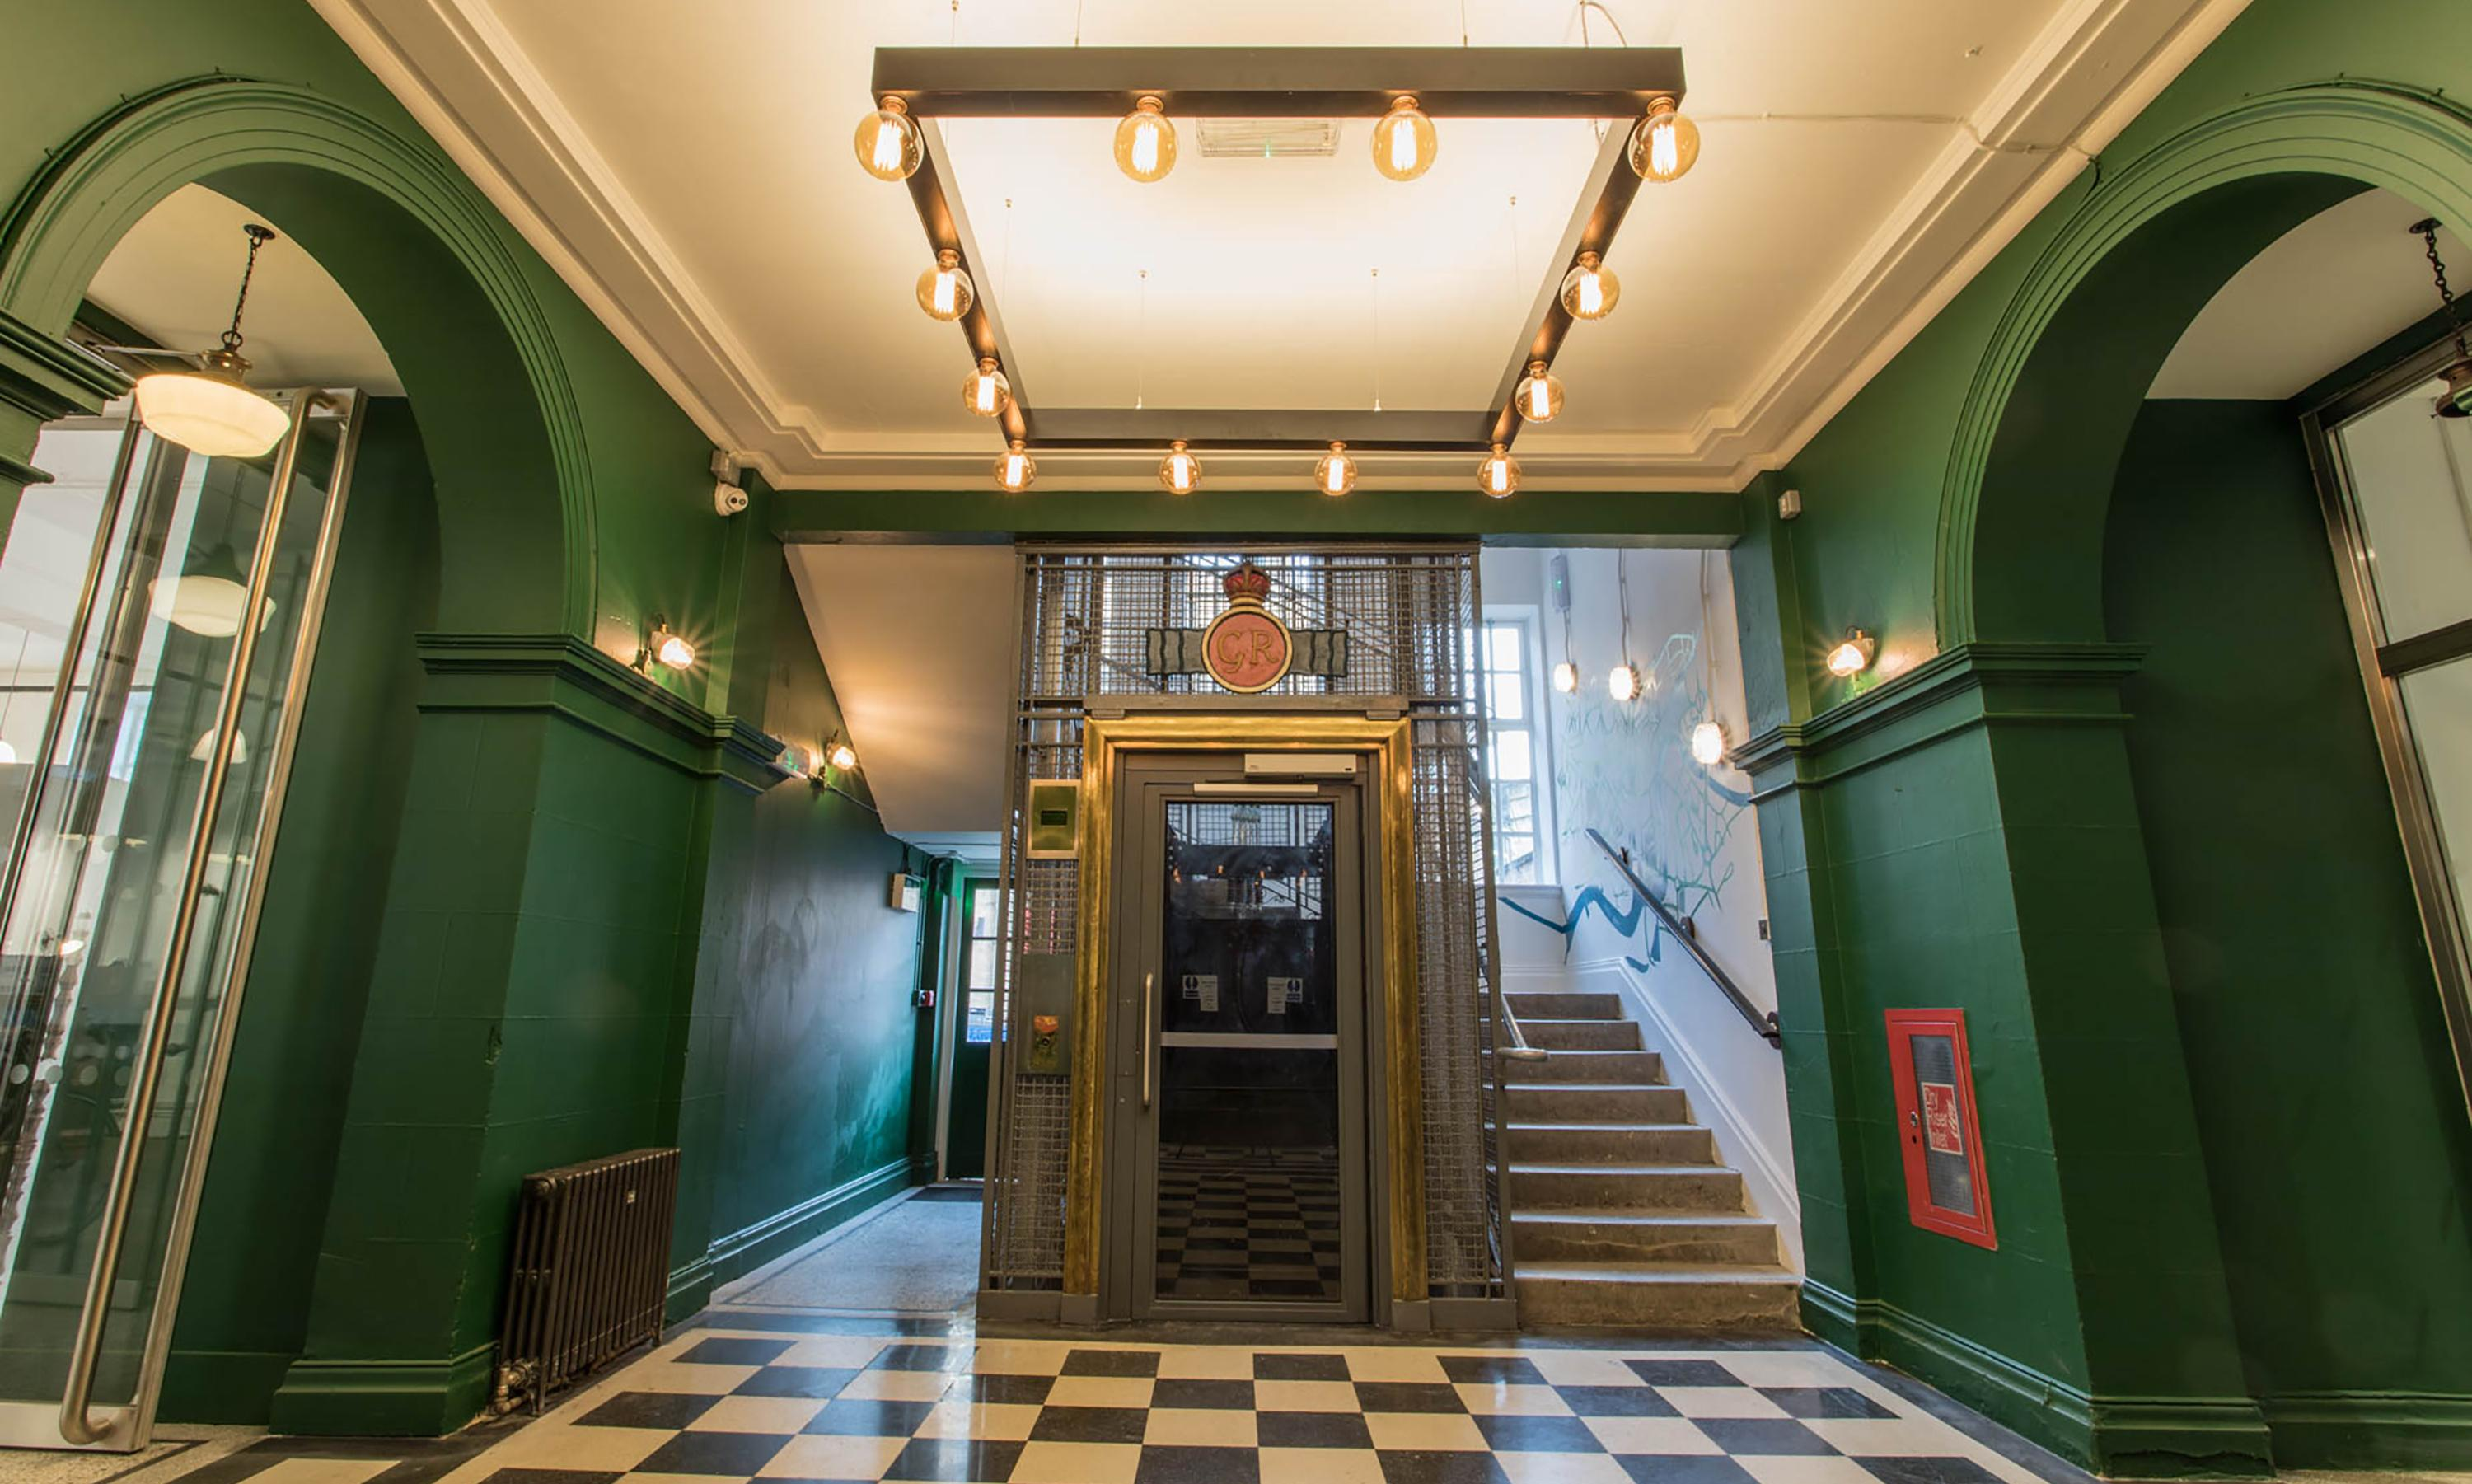 Bristol's old police headquarters is now a boutique hostel – with a social conscience